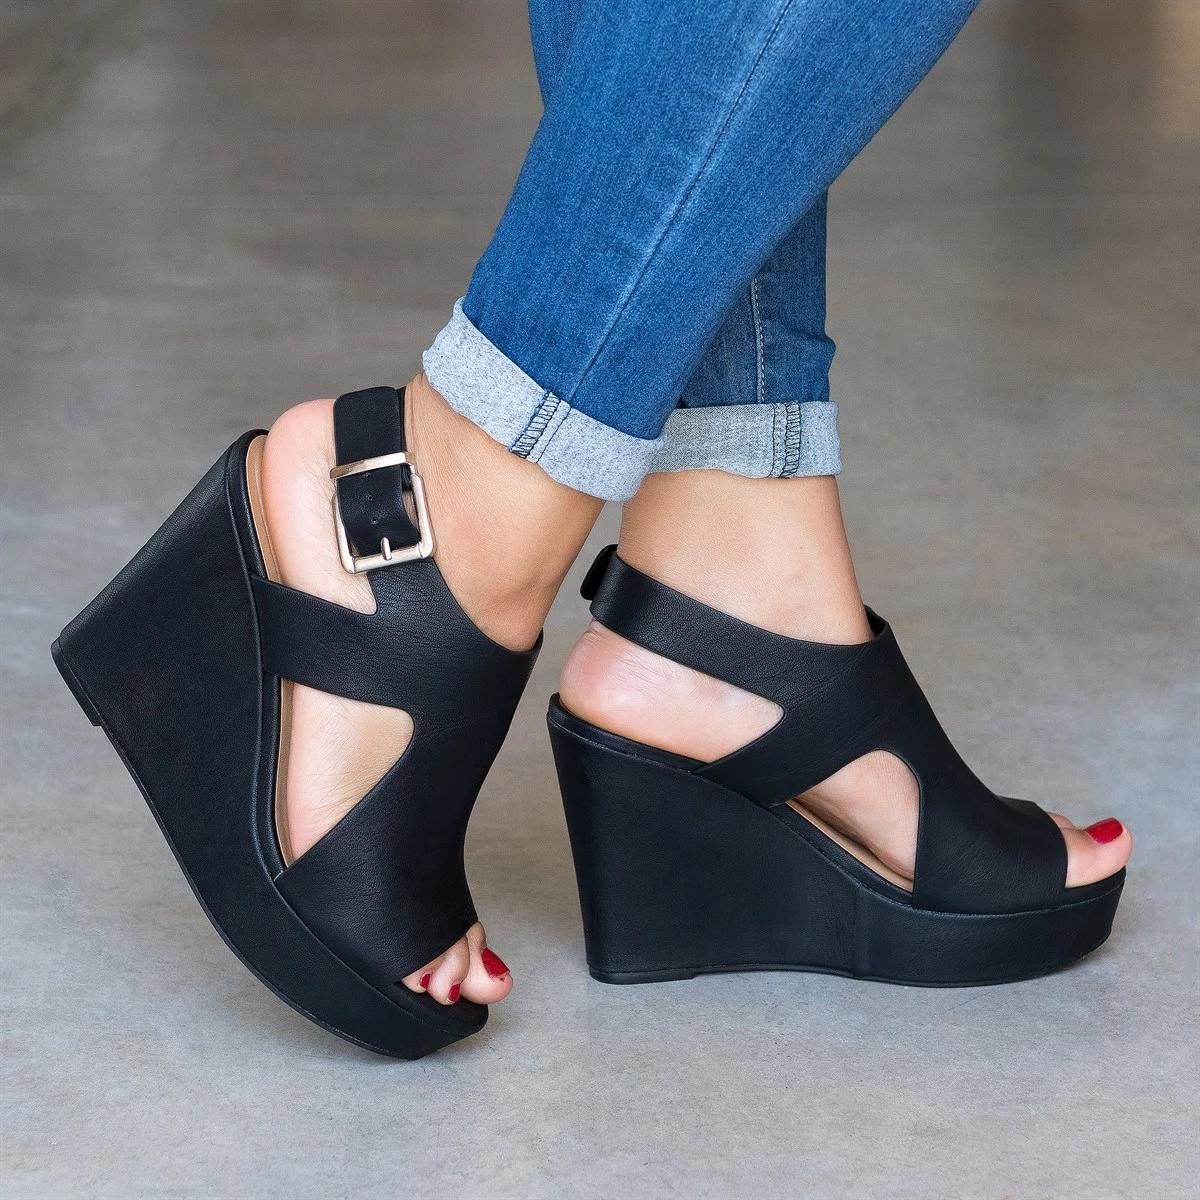 Shoes New Fashion Ladies Comfortable Peep Toe Wedges